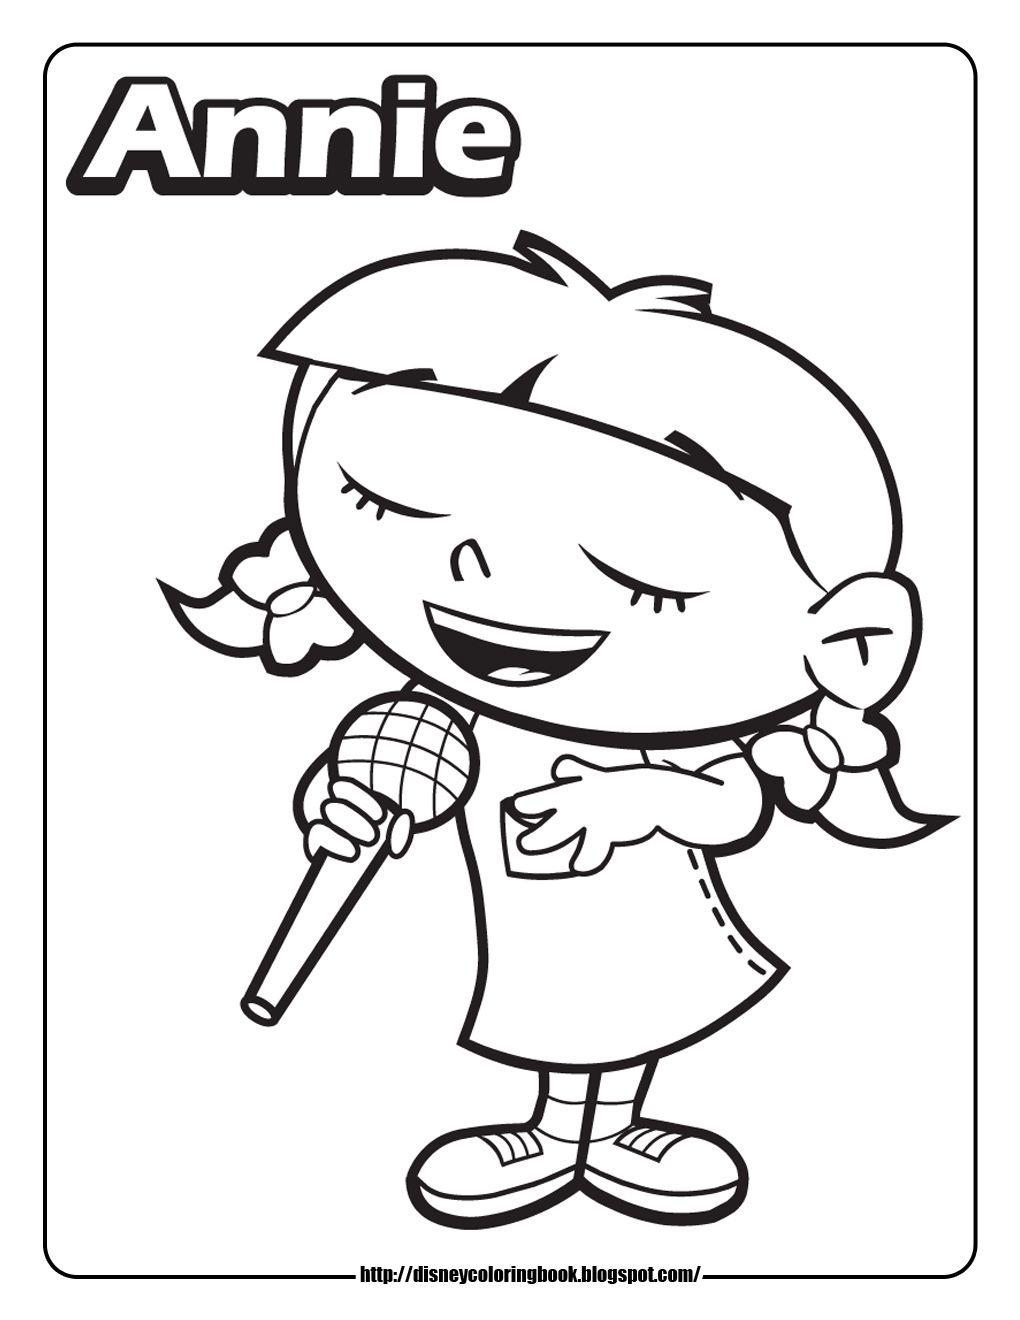 little einsteins annie - coloring page | Party: Fairies (Sydney ...